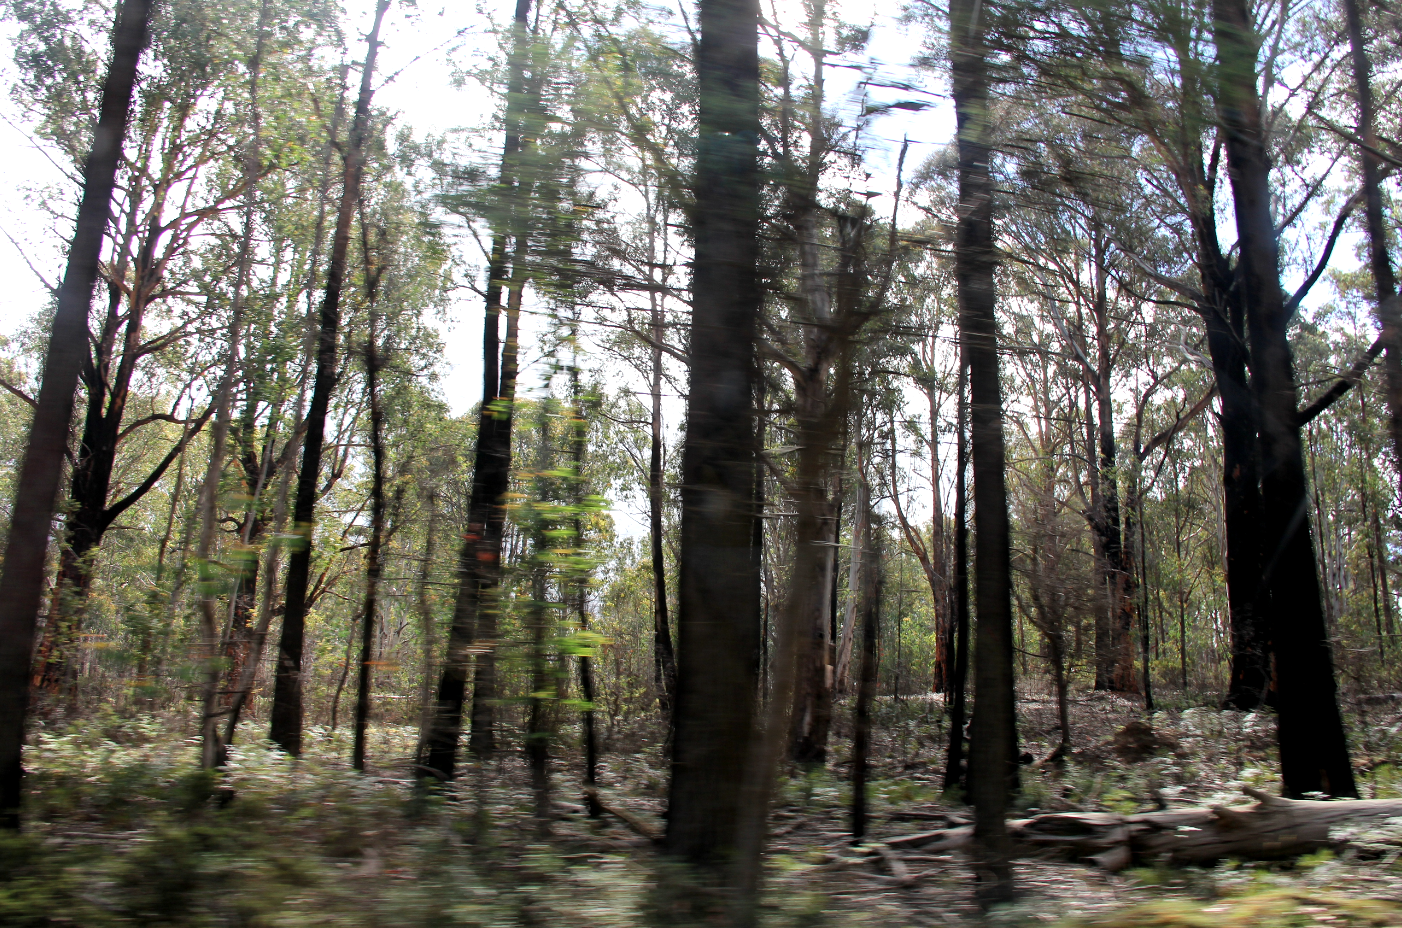 Forest of trees, blurred